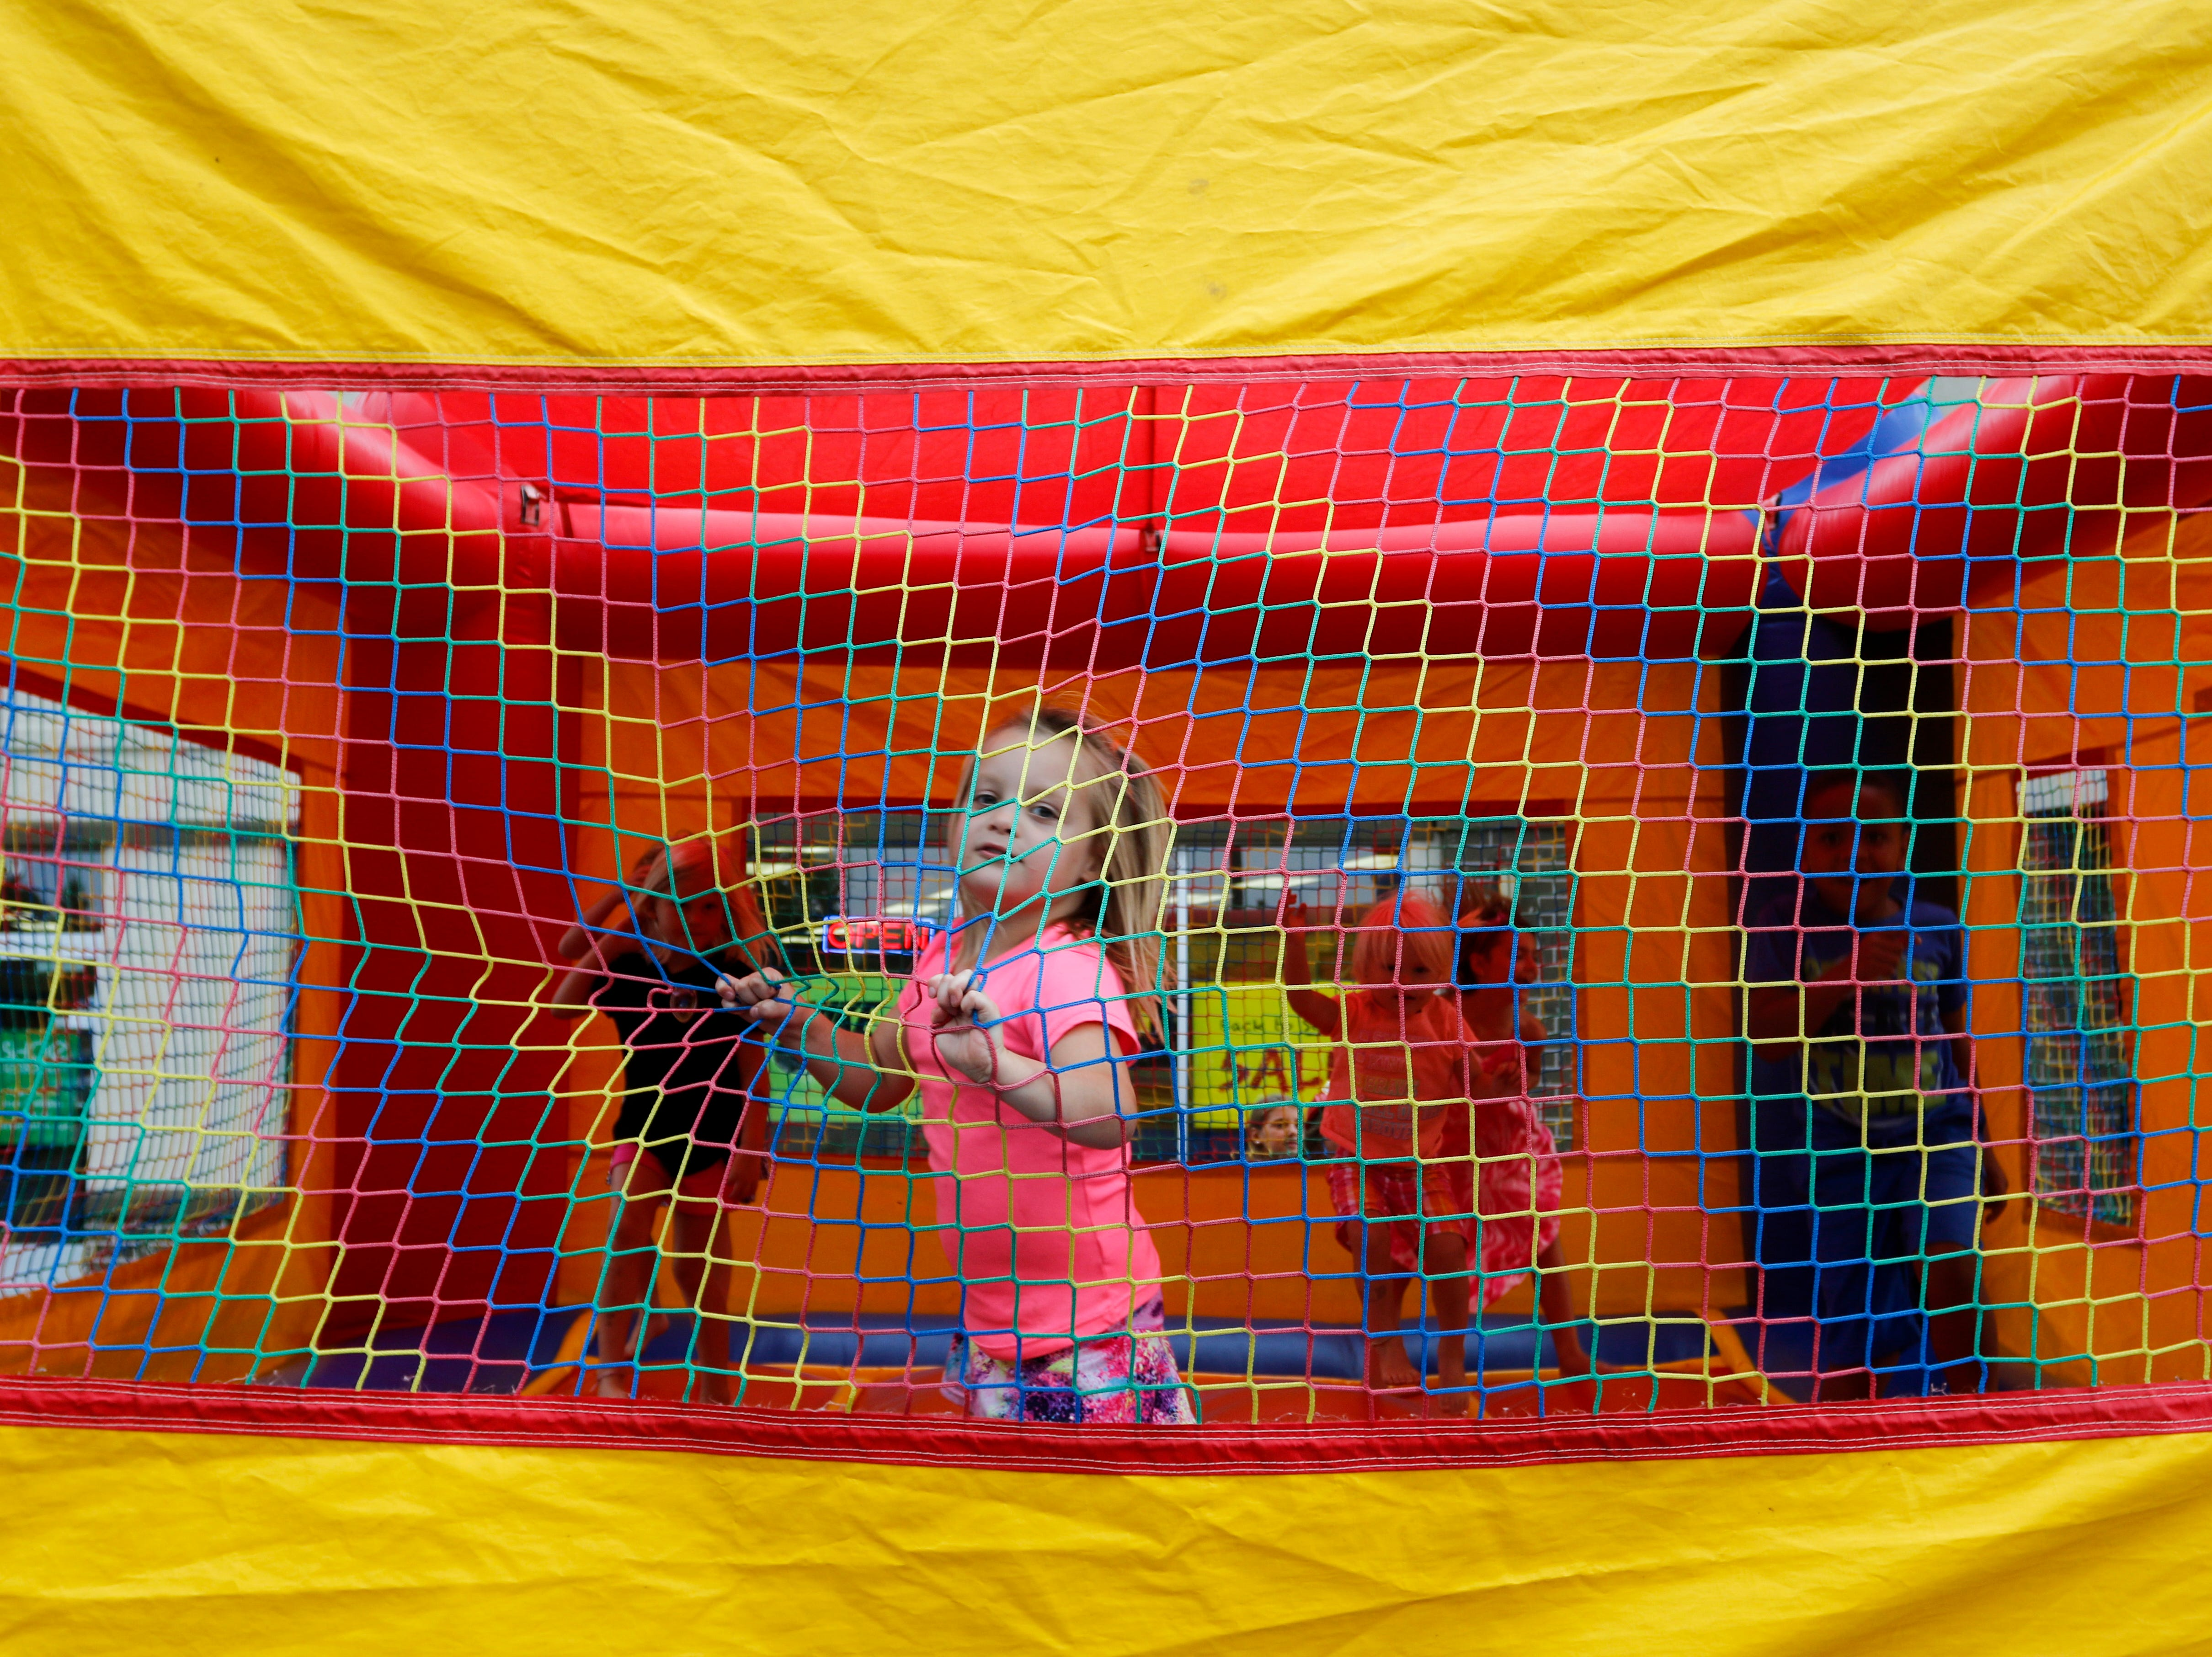 Alayna Mazurek, 4, plays in the bounce house during the National Night Out event put on by the Wisconsin Rapids Police Department in the Crossview Church parking lot in Wisconsin Rapids Tuesday, August 7, 2018.